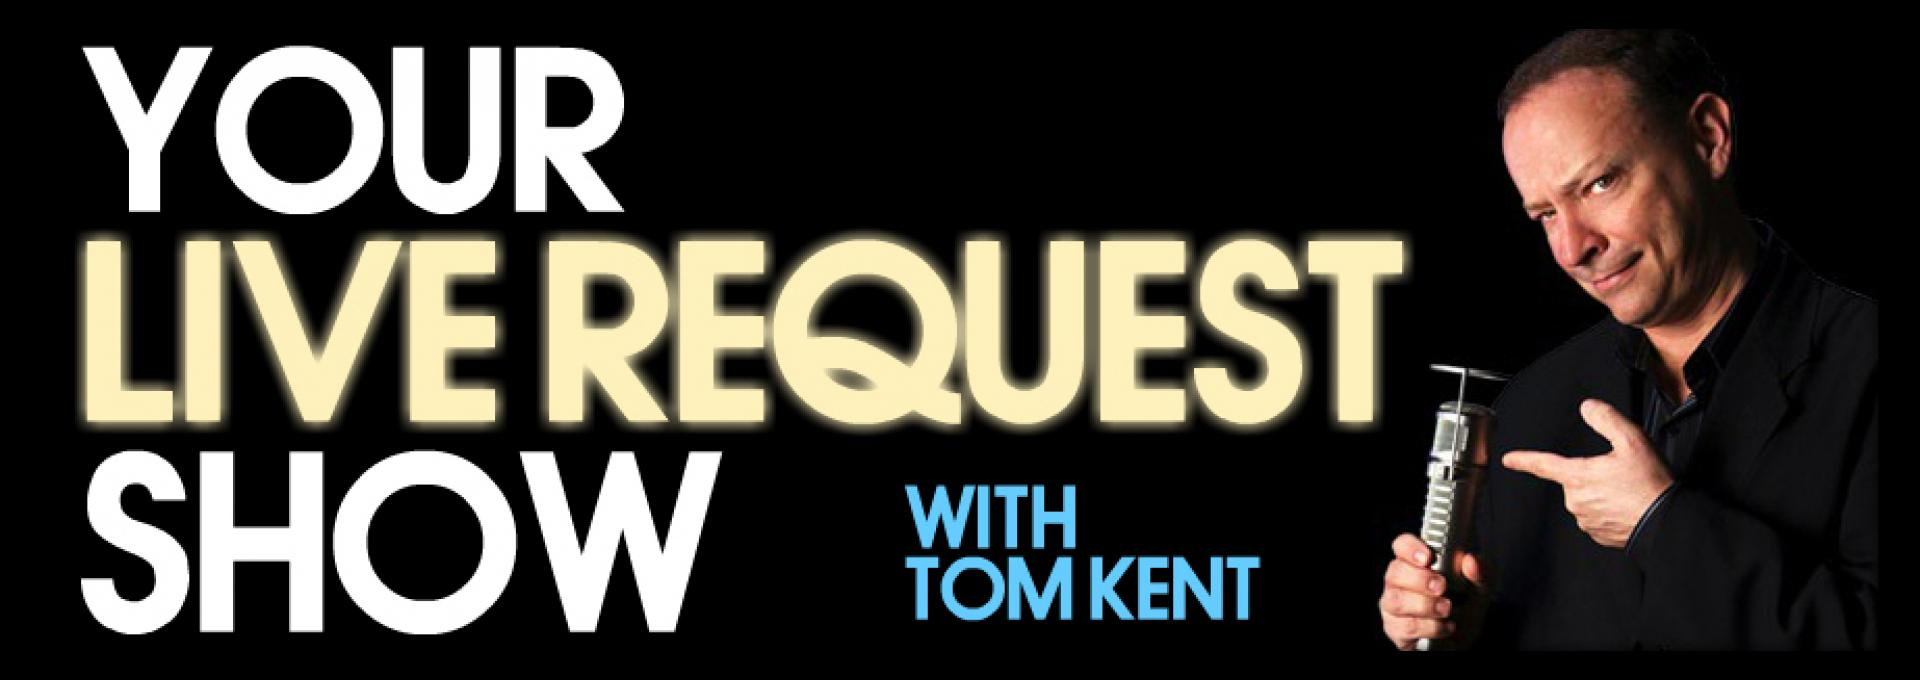 YOUR LIVE REQUEST SHOW with Tom Kent hero